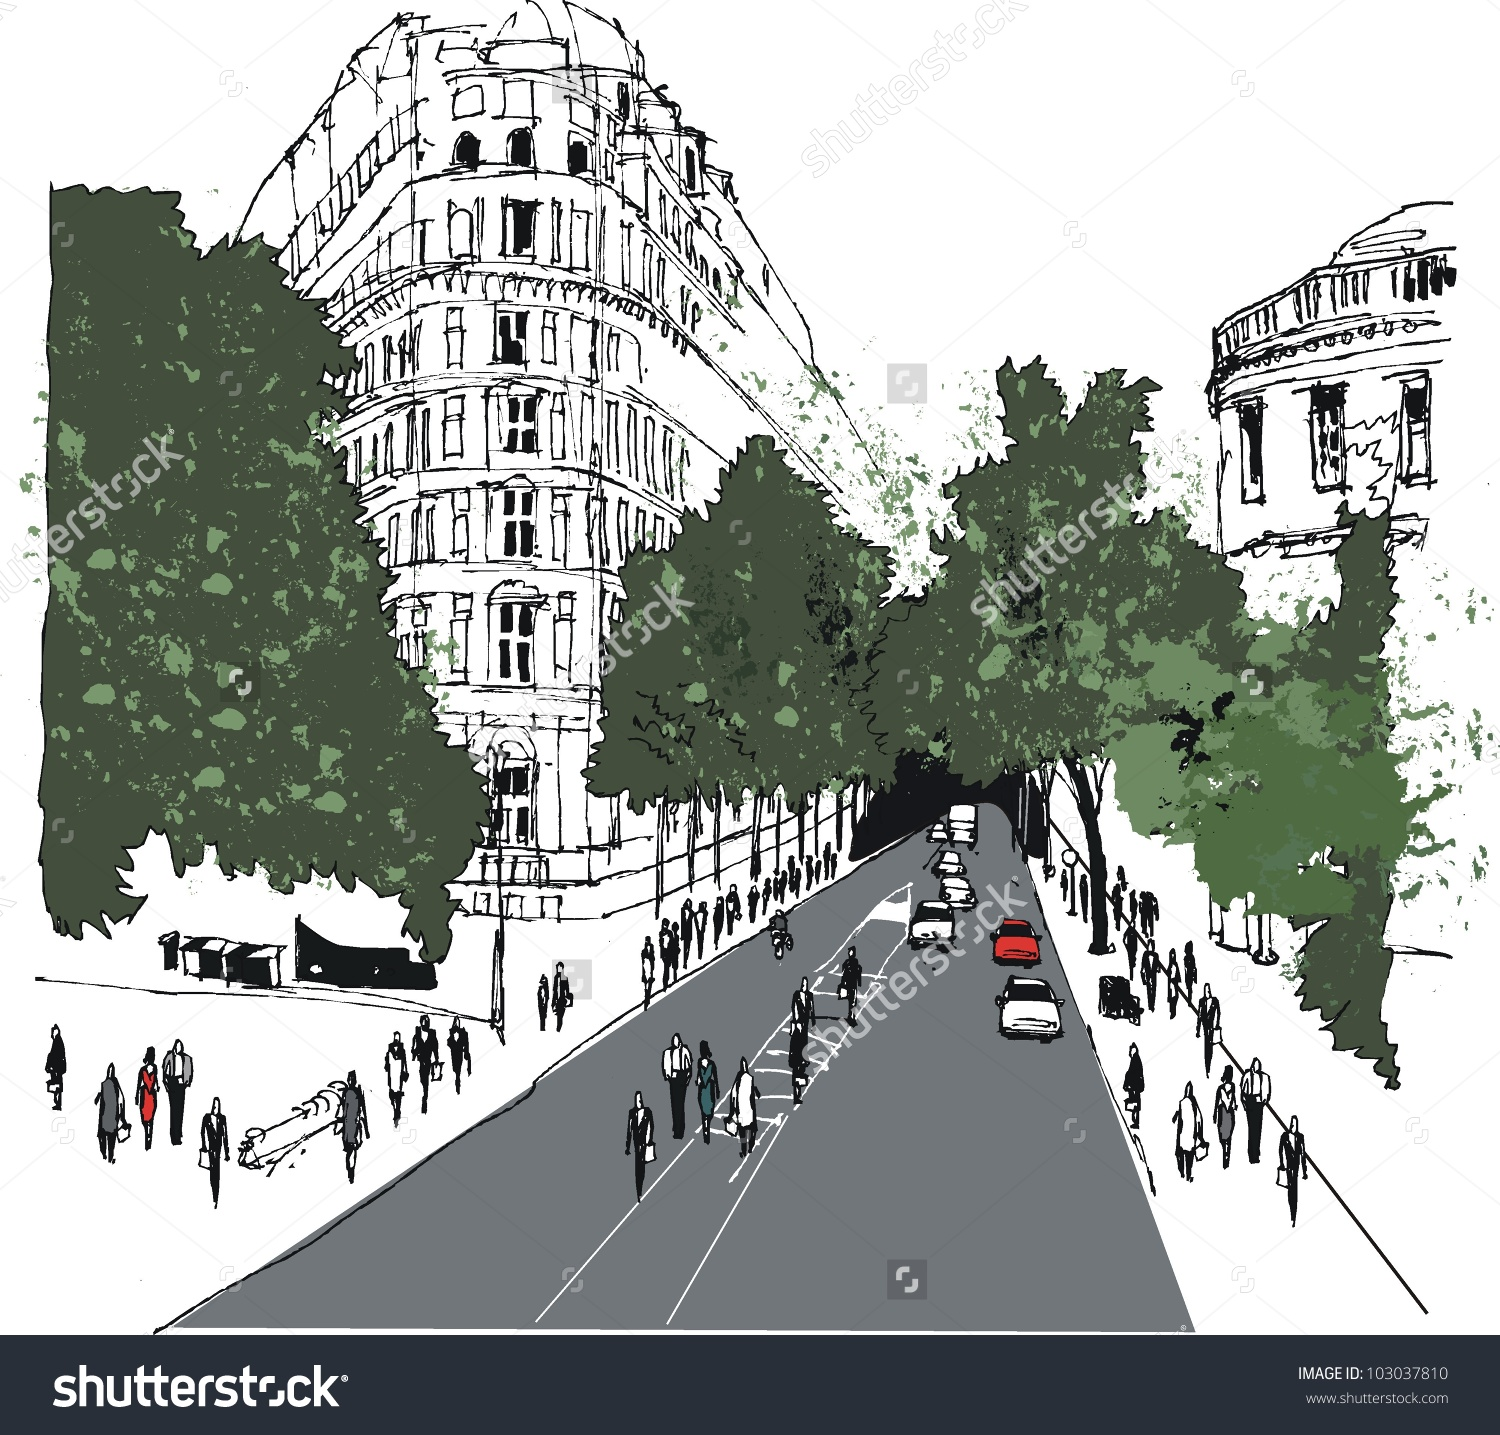 Vector Illustration Of Whitehall Street Scene With Pedestrians.